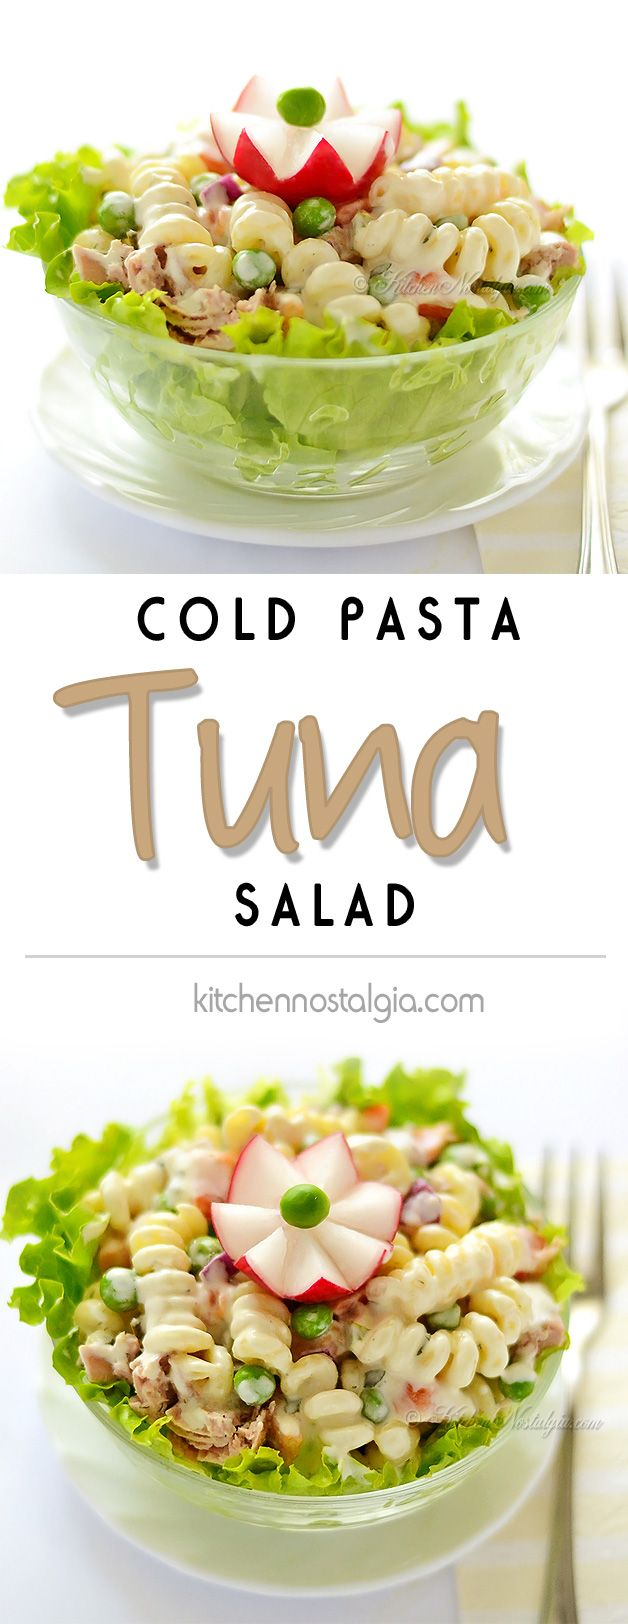 17 best images about food on the road on pinterest for Cold pasta salad ideas